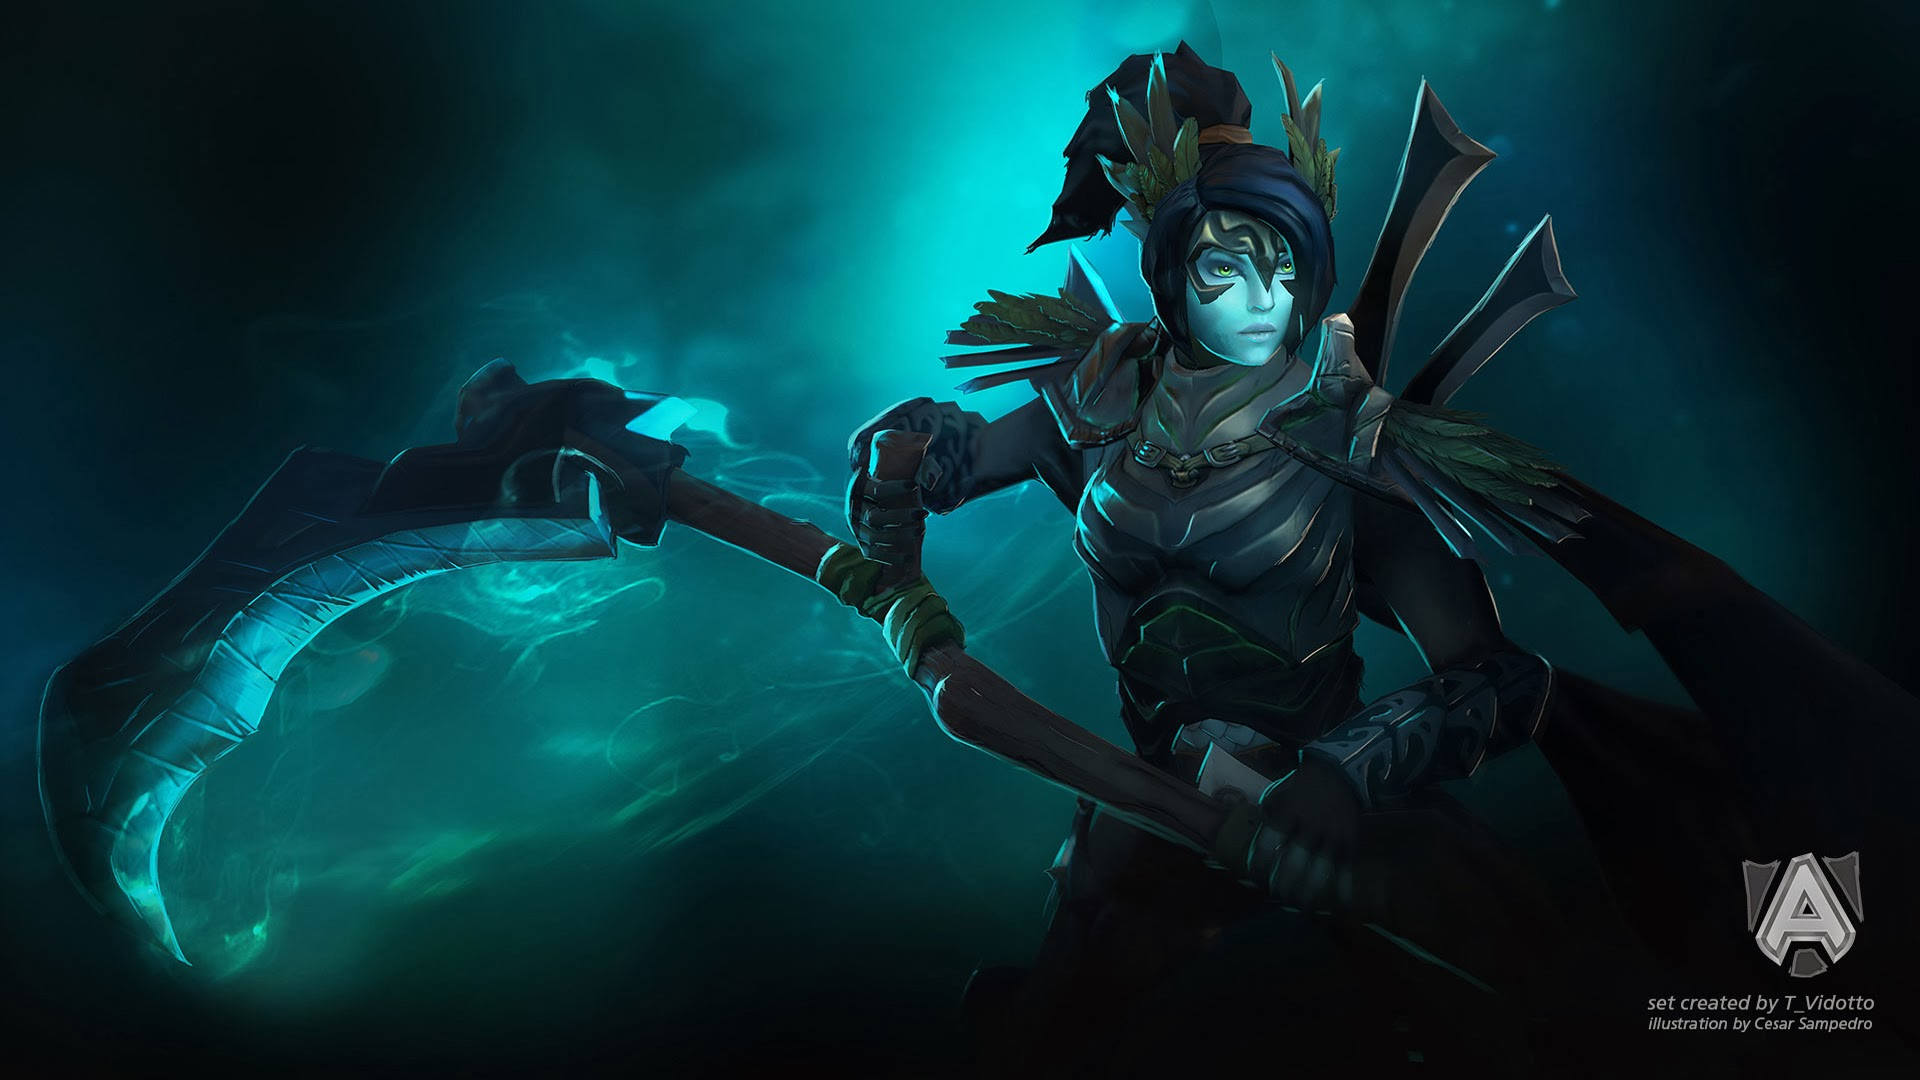 Hd wallpaper dota 2 - Uploads 2014 03 Mor Ssassin Death